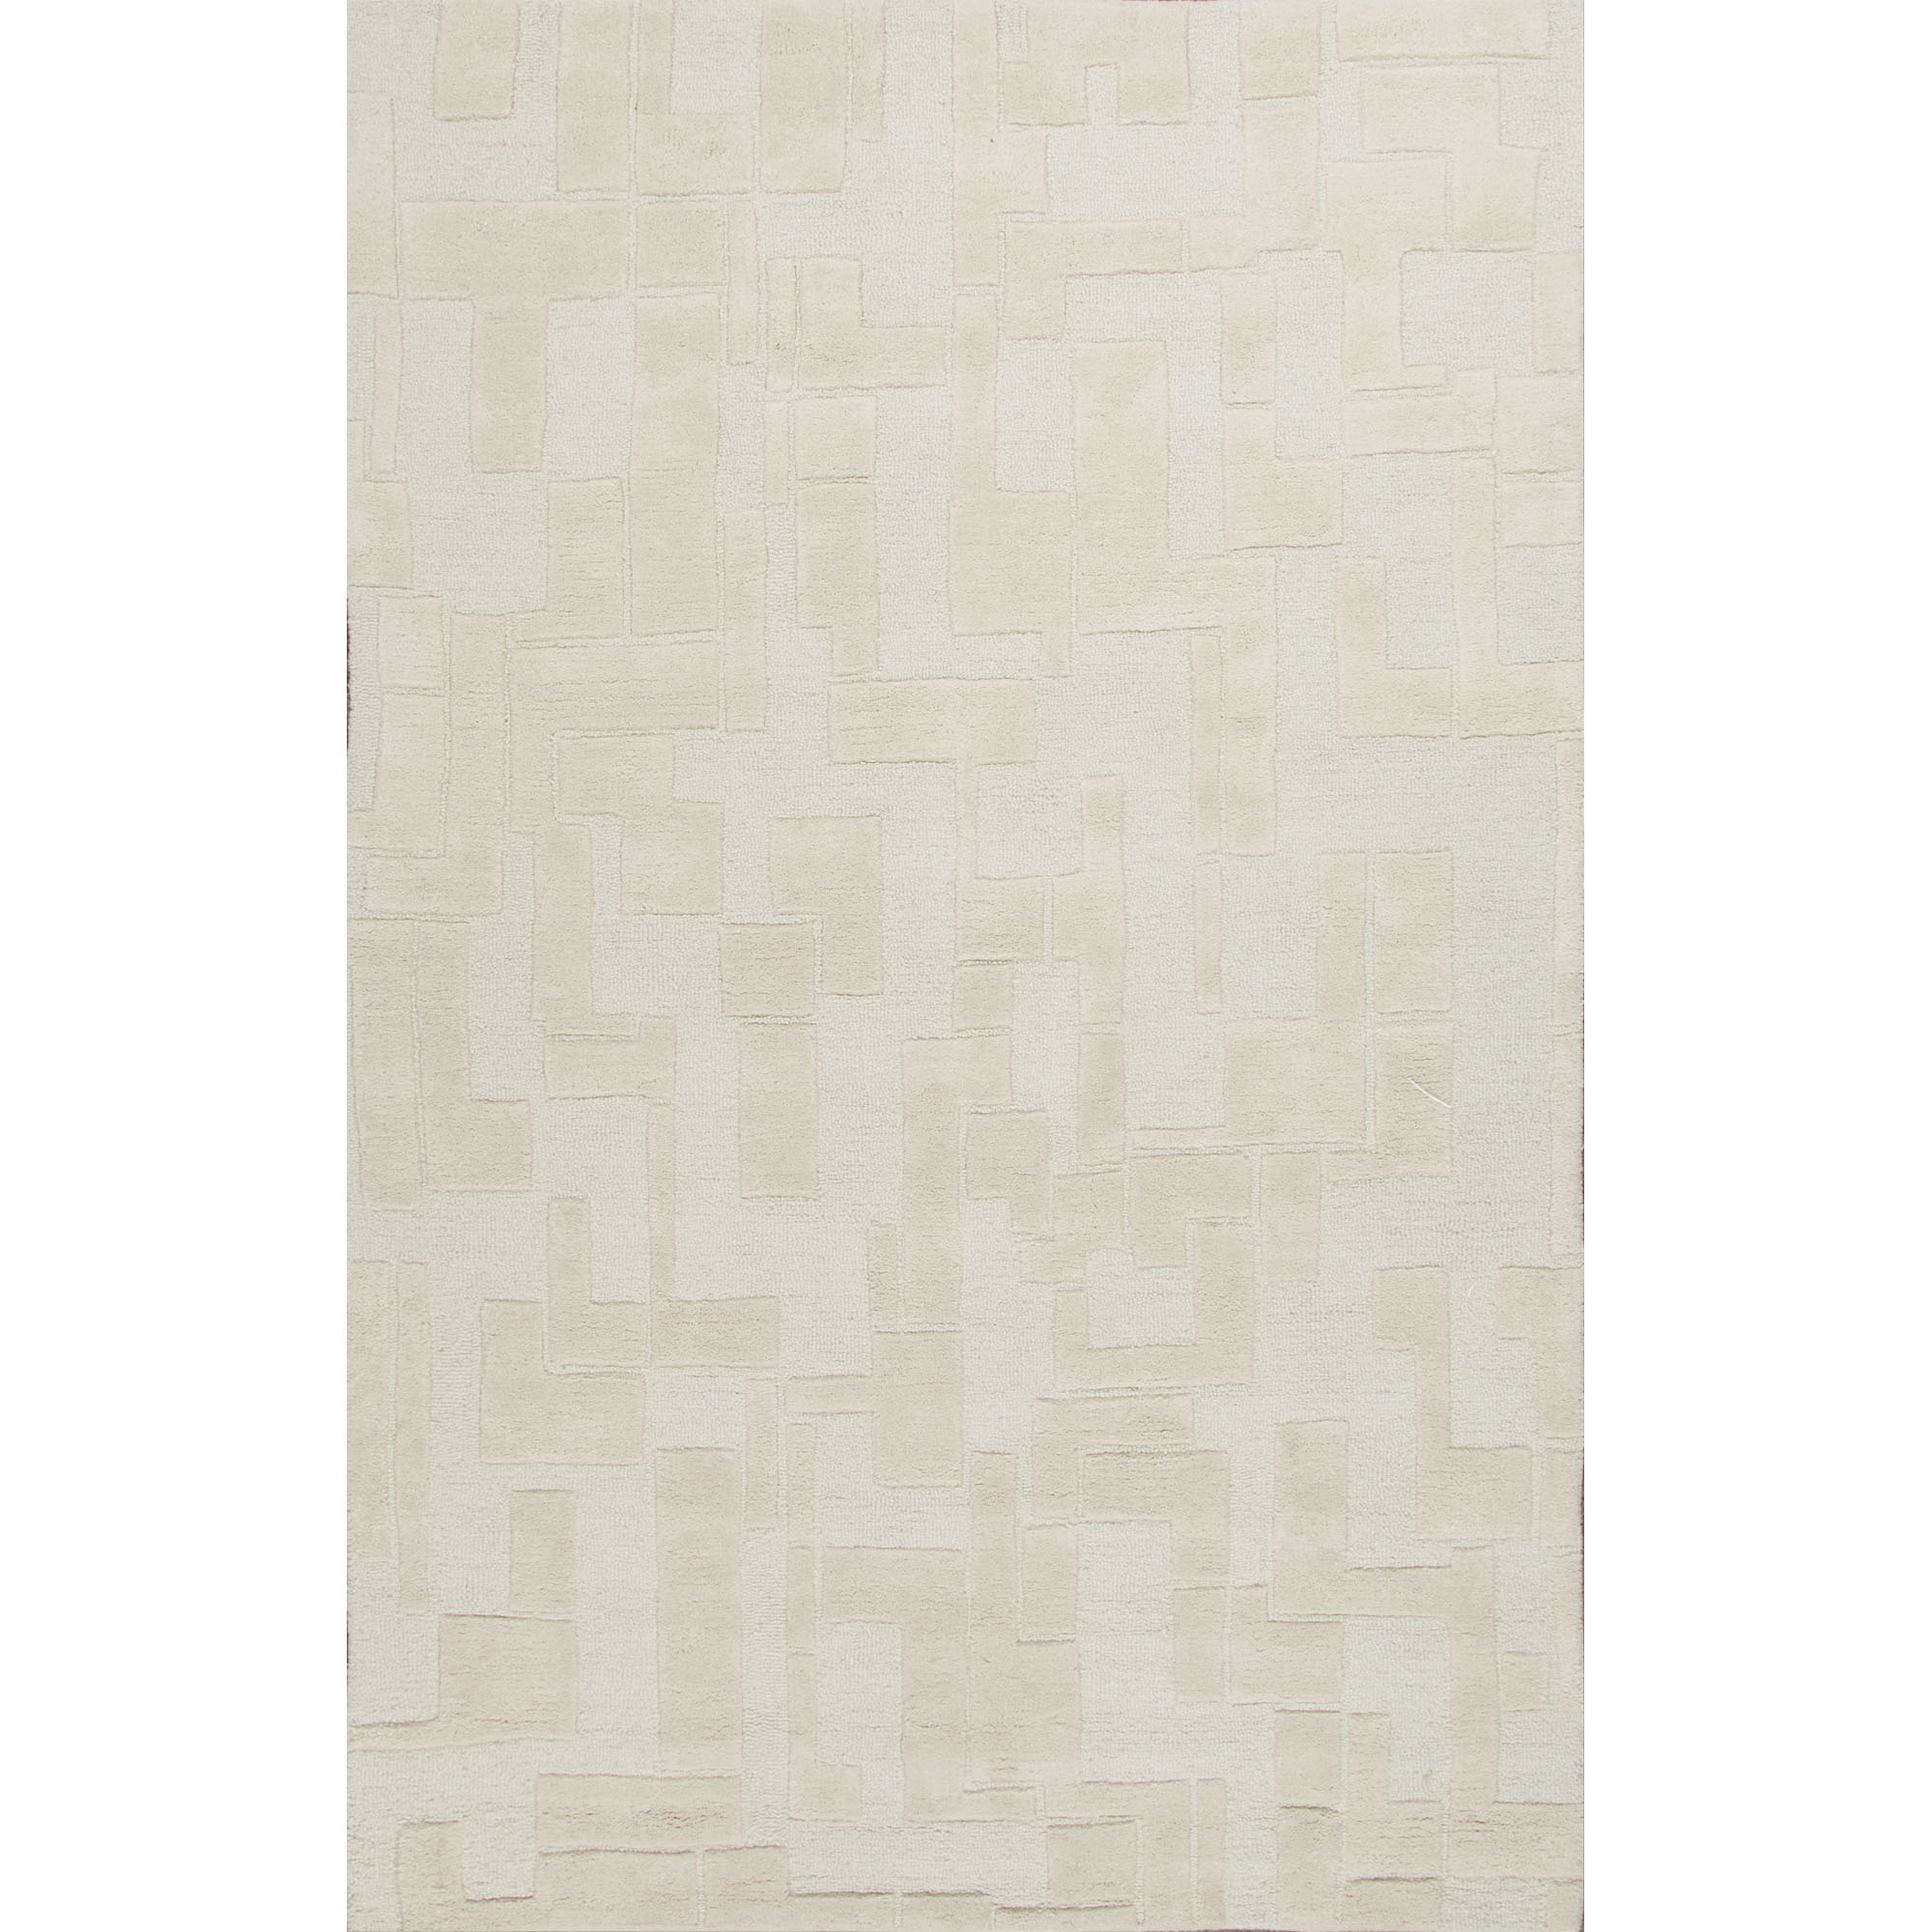 JAIPUR Rugs Lounge 2 x 3 Rug - Item Number: RUG112618